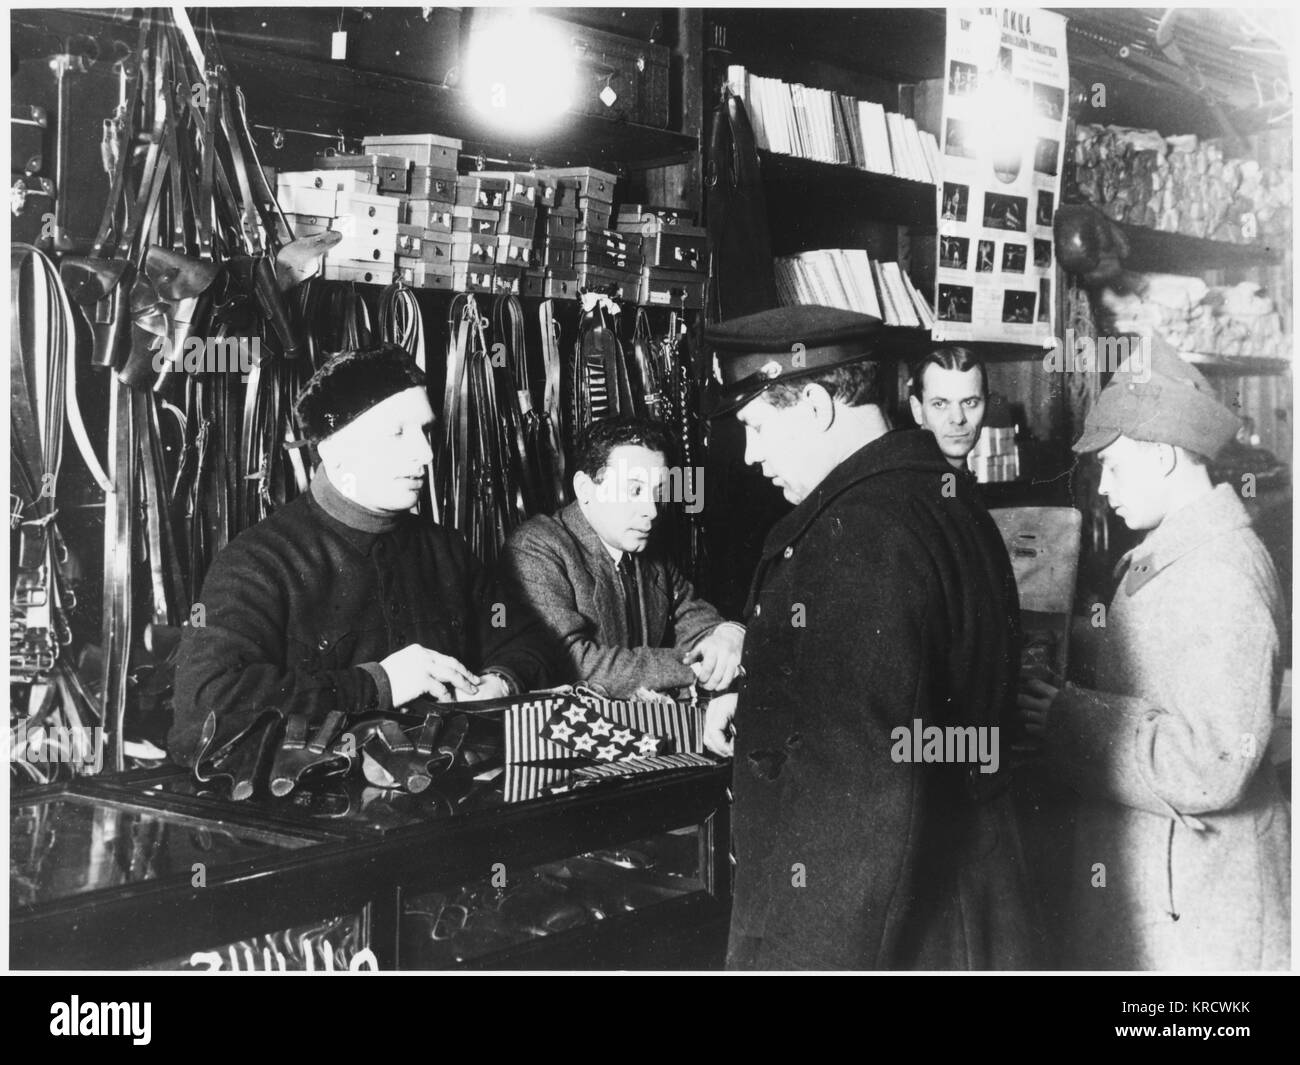 Customers examine goods over the counter in the military goods section of a Leningrad department store Date: 1928 - Stock Image